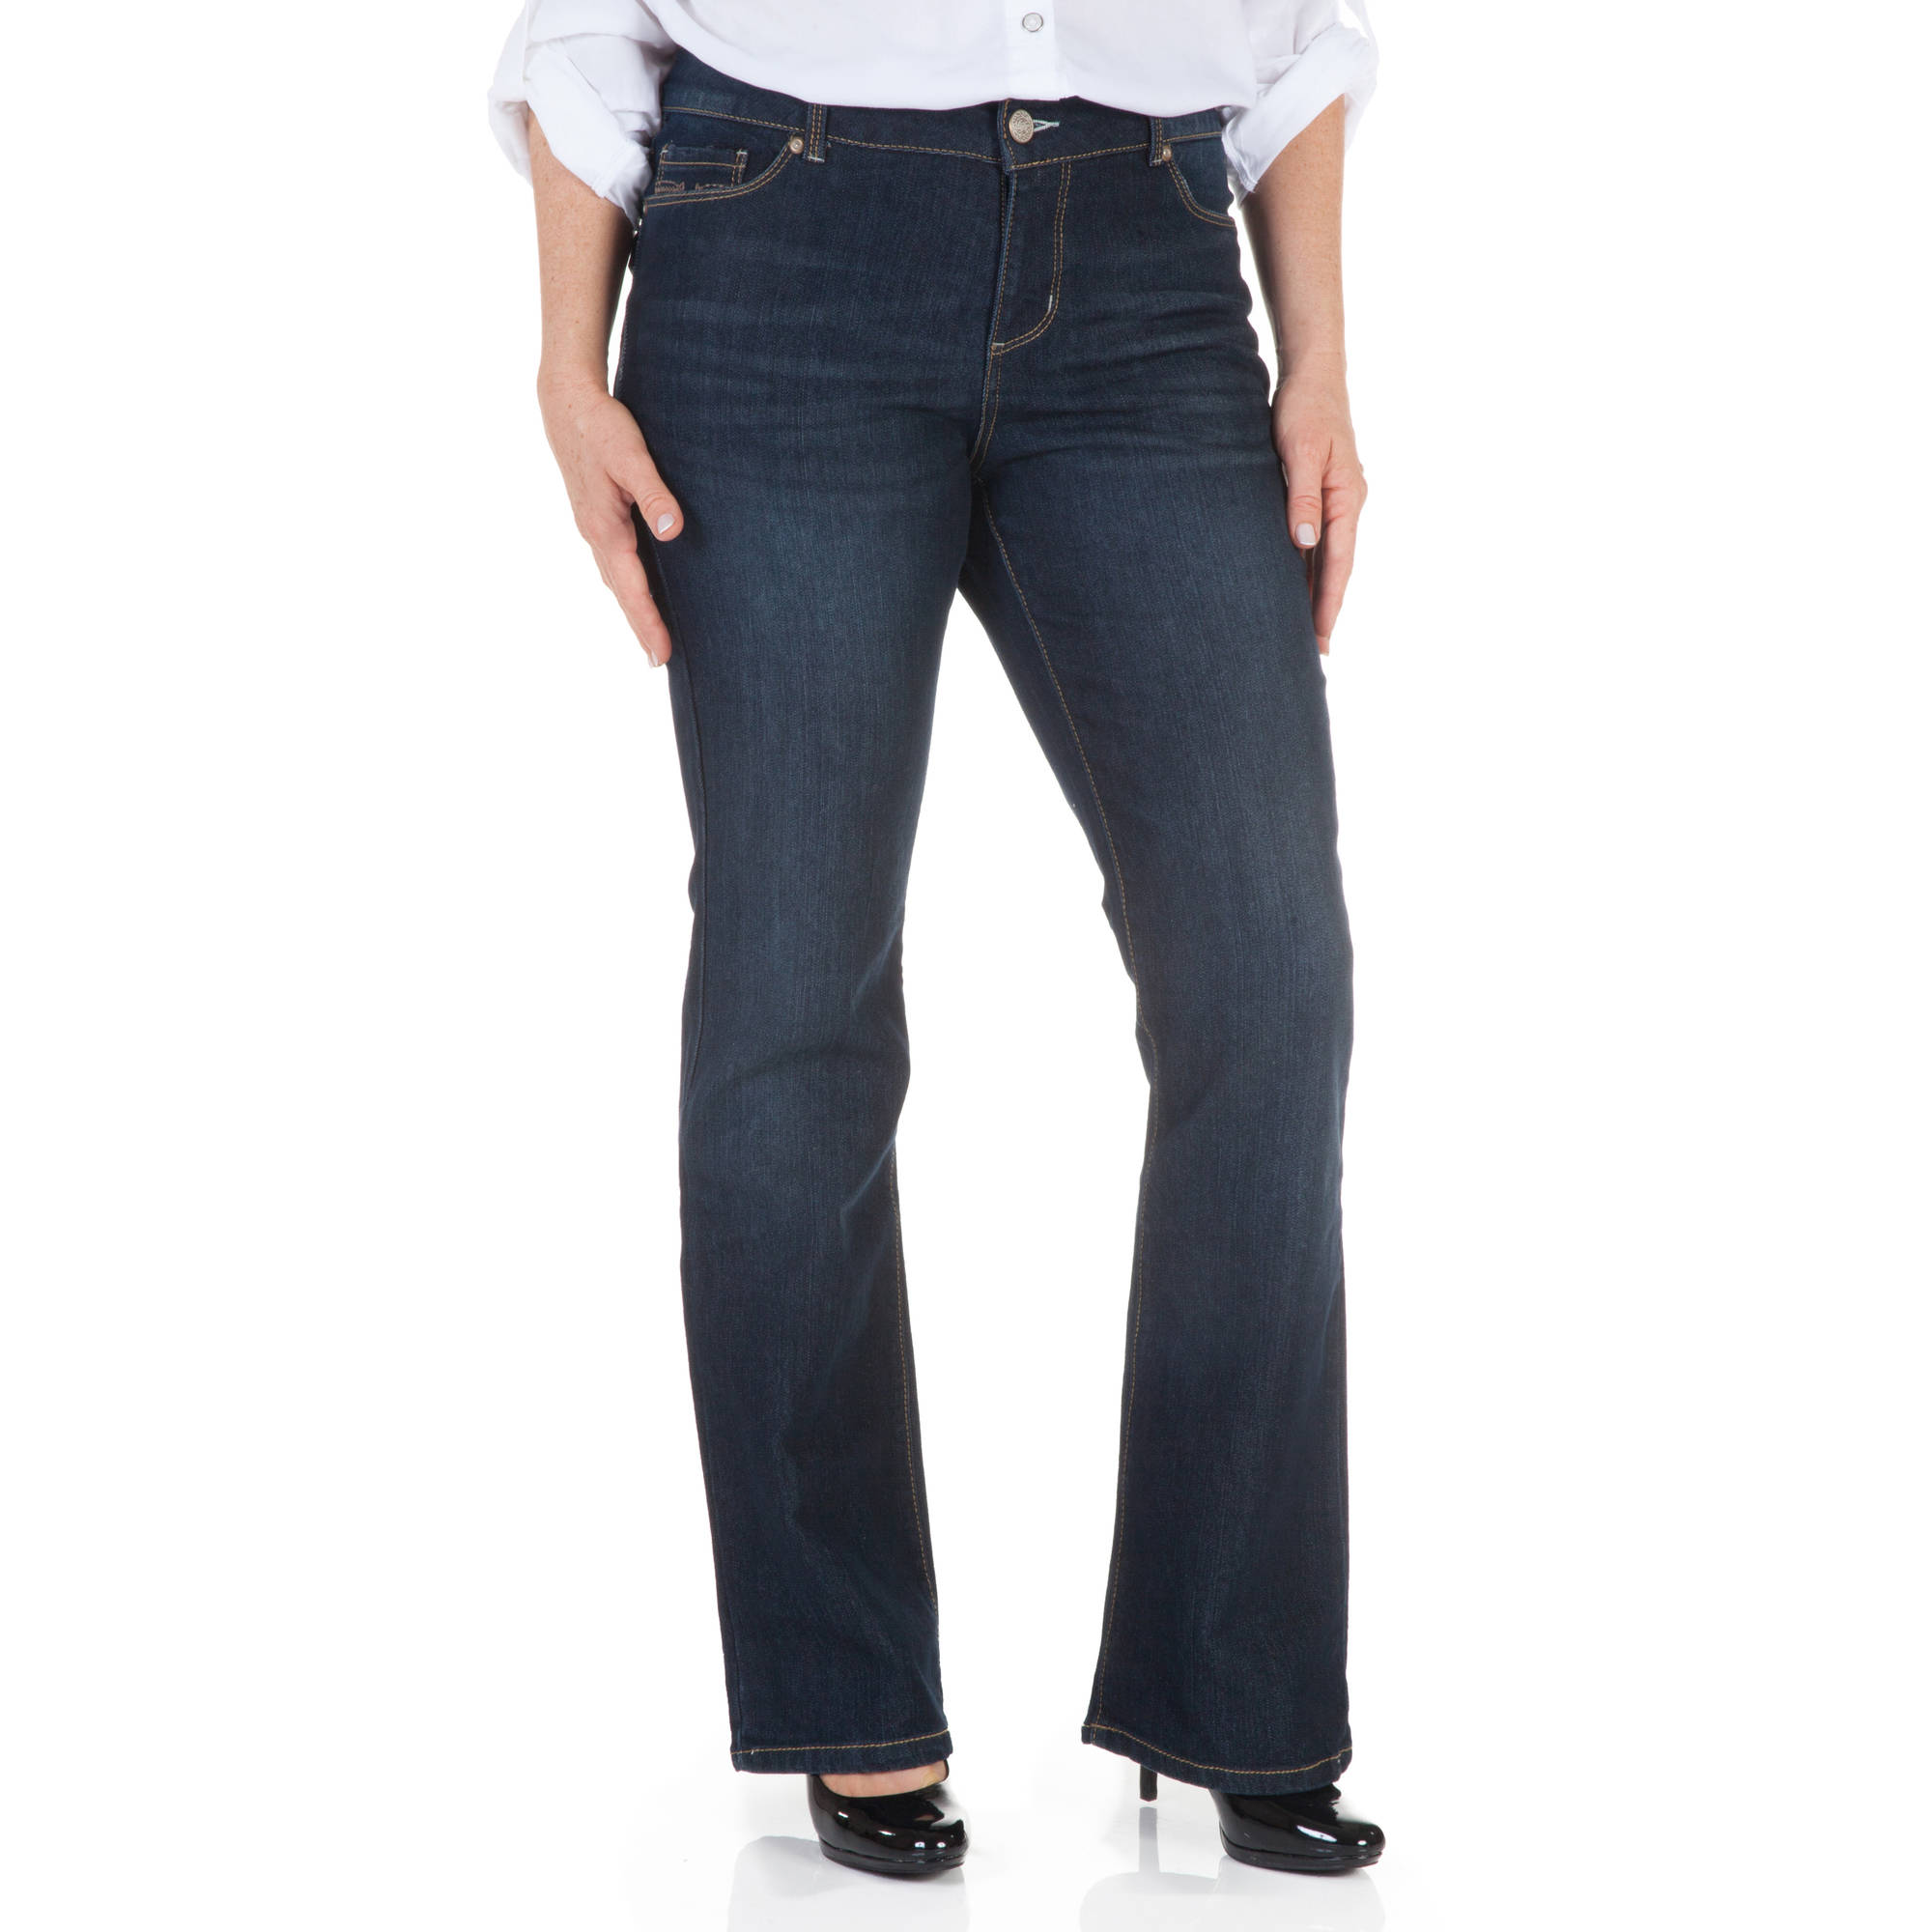 Faded glory women's basic bootcut jeans petite